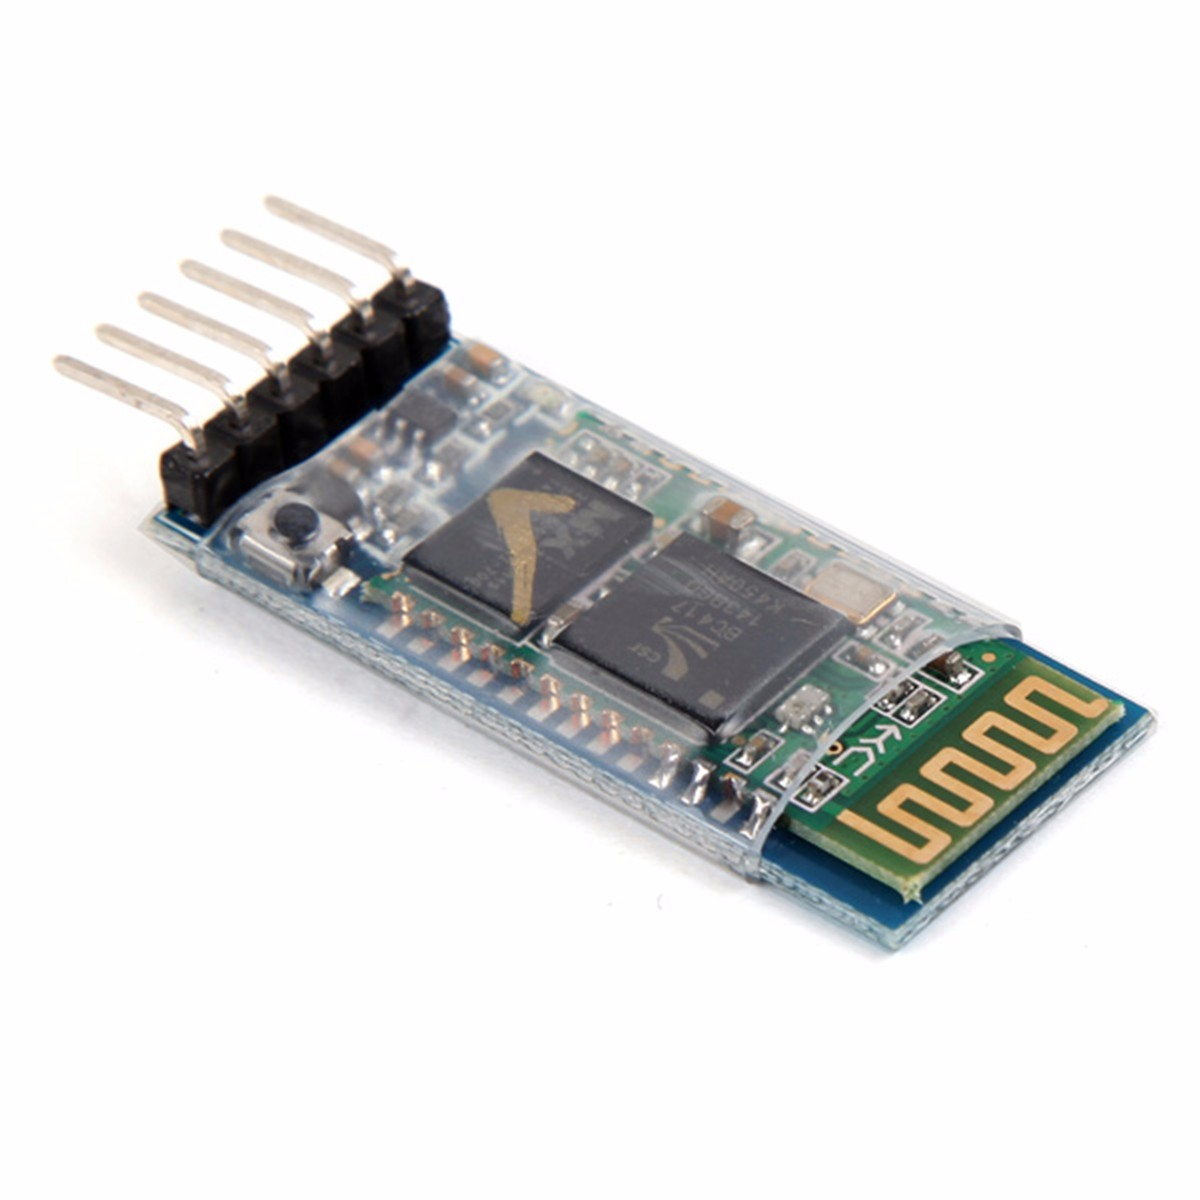 Online Shop 2pcs New Arrival Hc 05 Wireless Bluetooth Serial Bluetoothcircuit Transceiver Module Slave And Master Integrated Circuits Boards Aliexpress Mobile